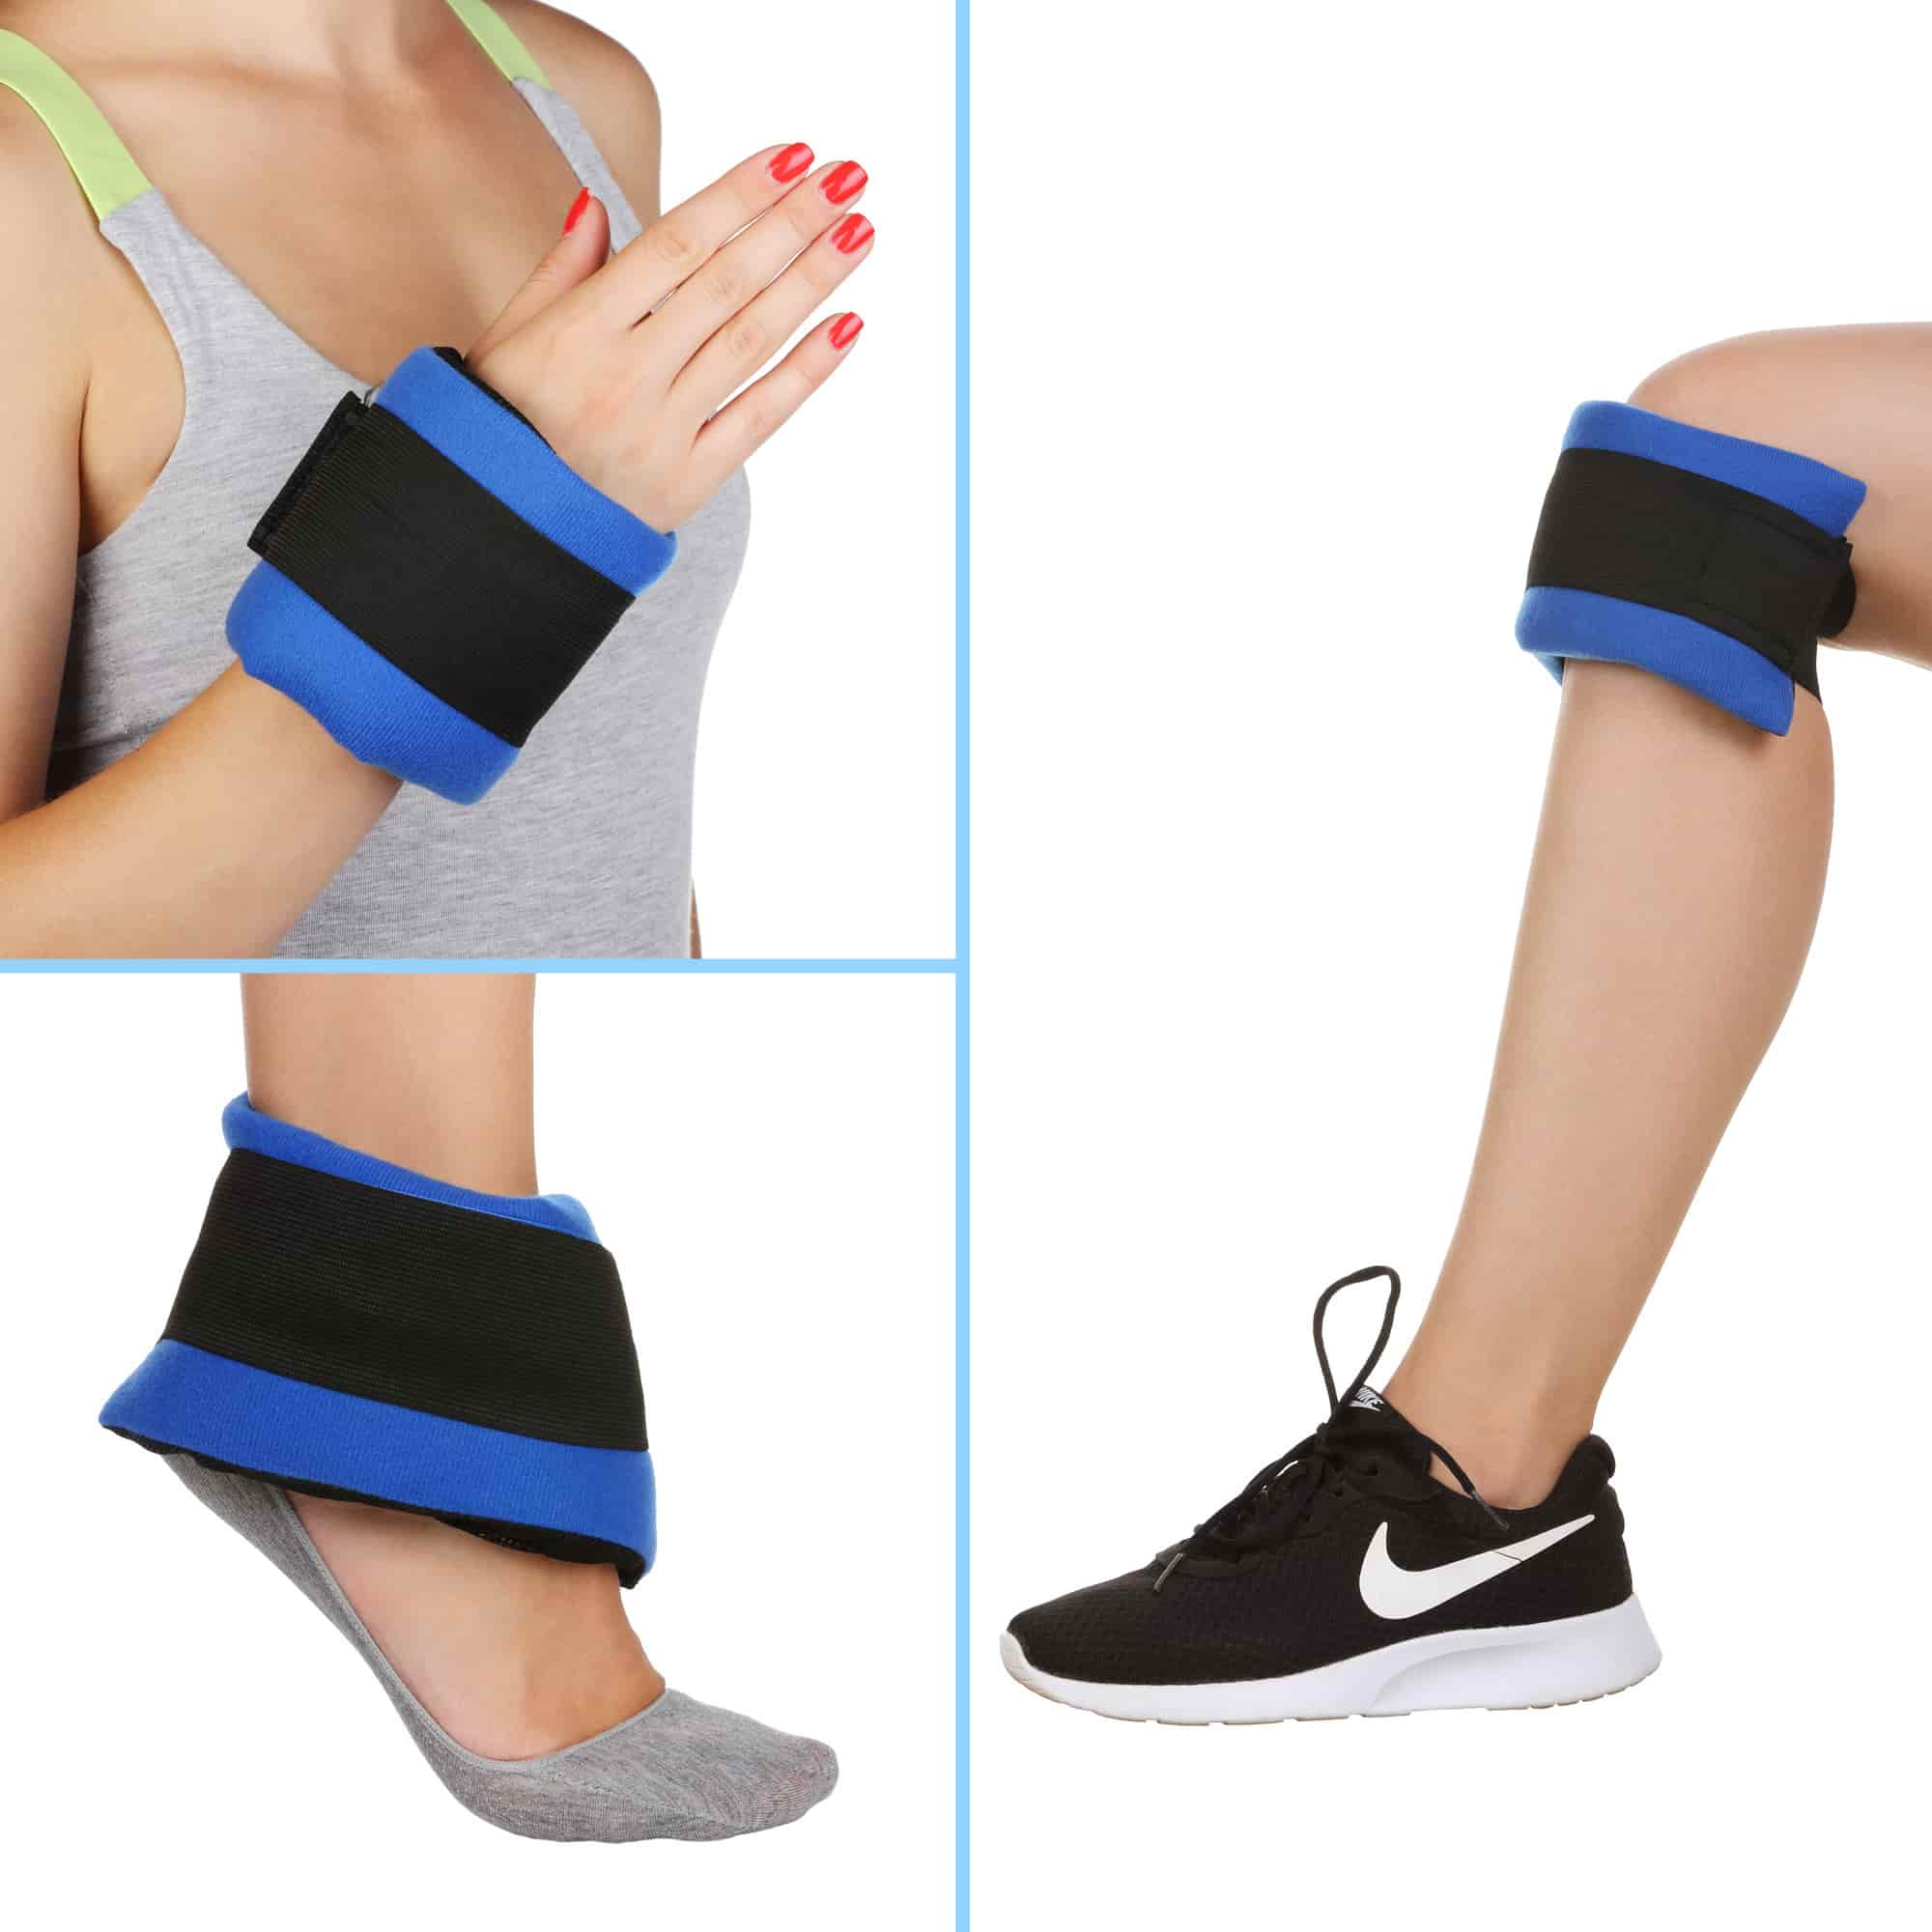 hot & cold pack for pain relief wrist ankle knee